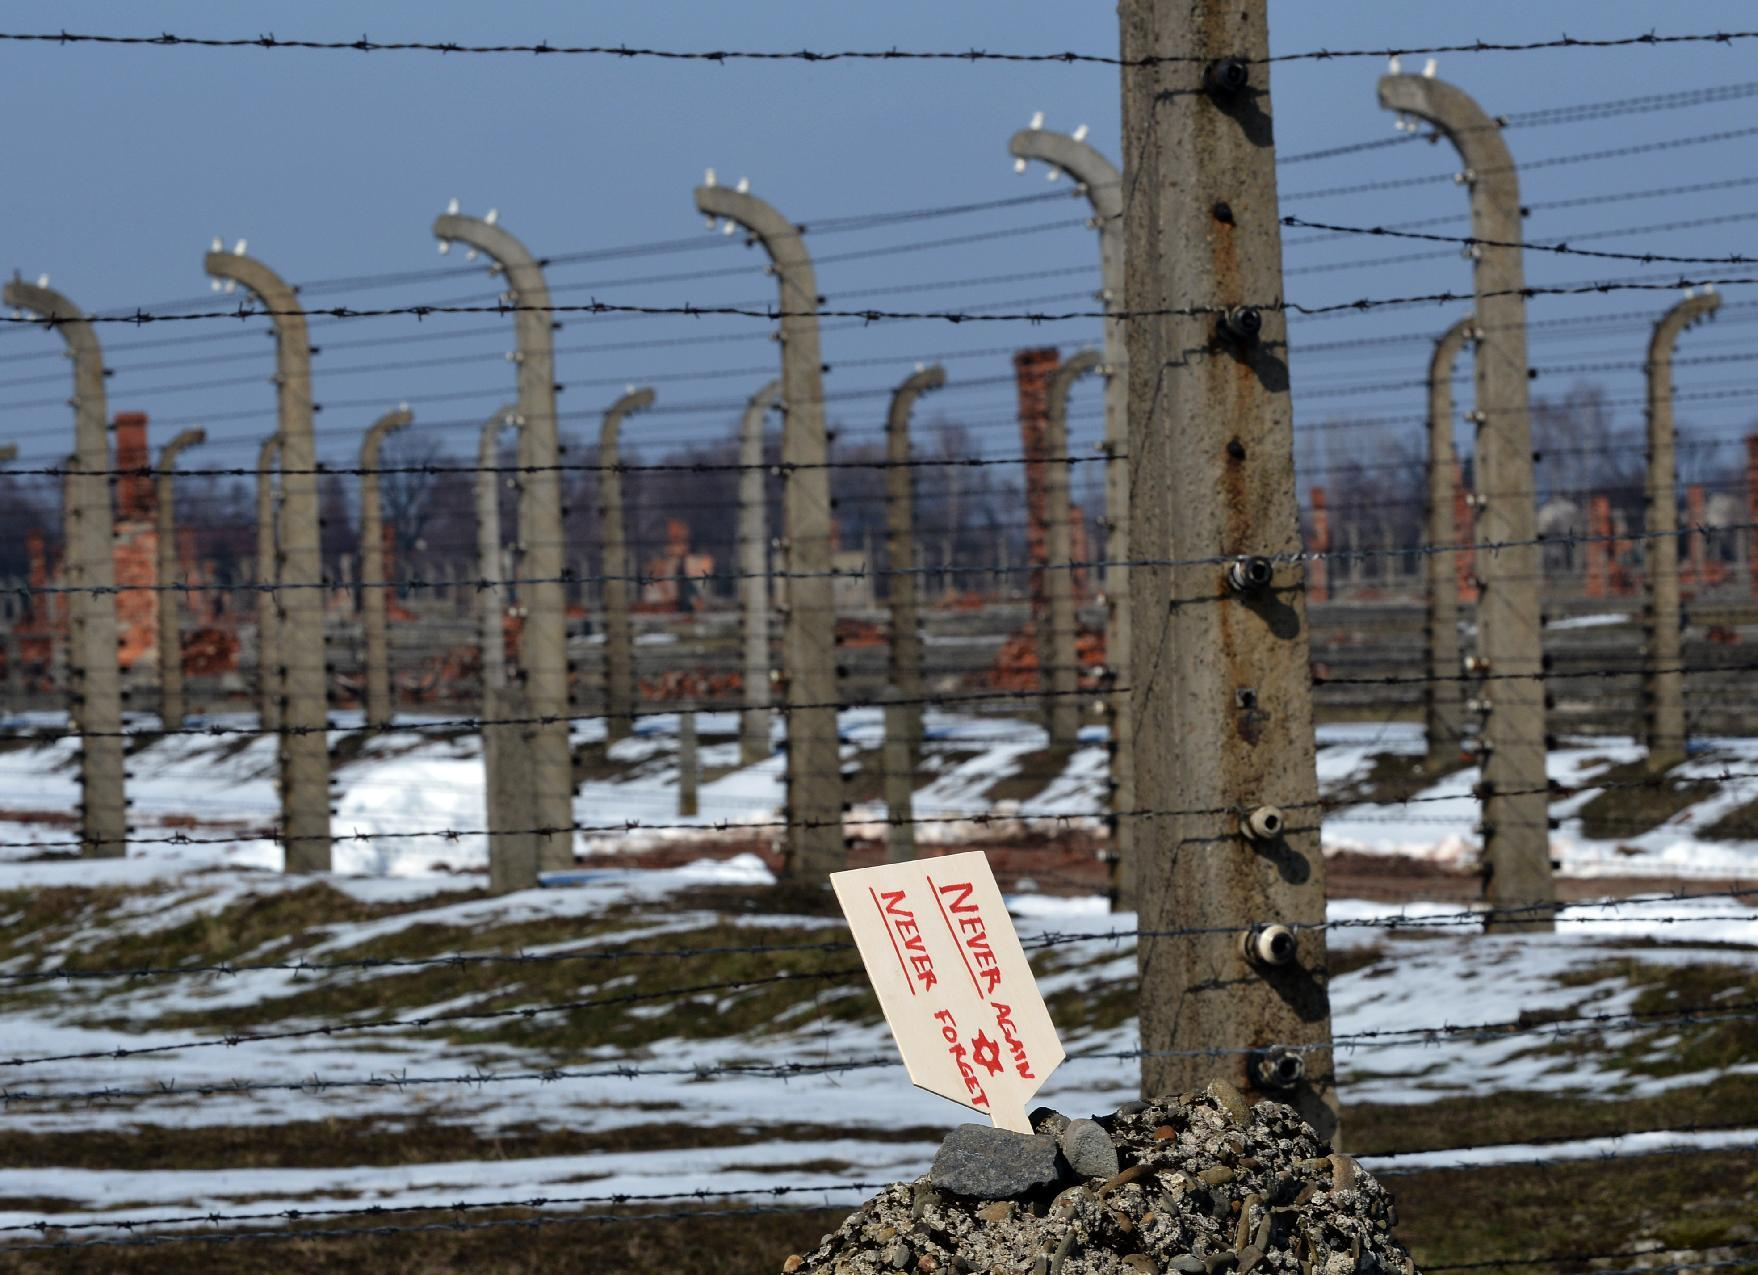 Photo taken on April 8, 2013 shows a memorial plaque stuck into a pile of pebbles on the fence of Auschwitz-Birkenau concentration camp, in Oswiecim, Poland (AFP Photo/Janek Skarzynski)